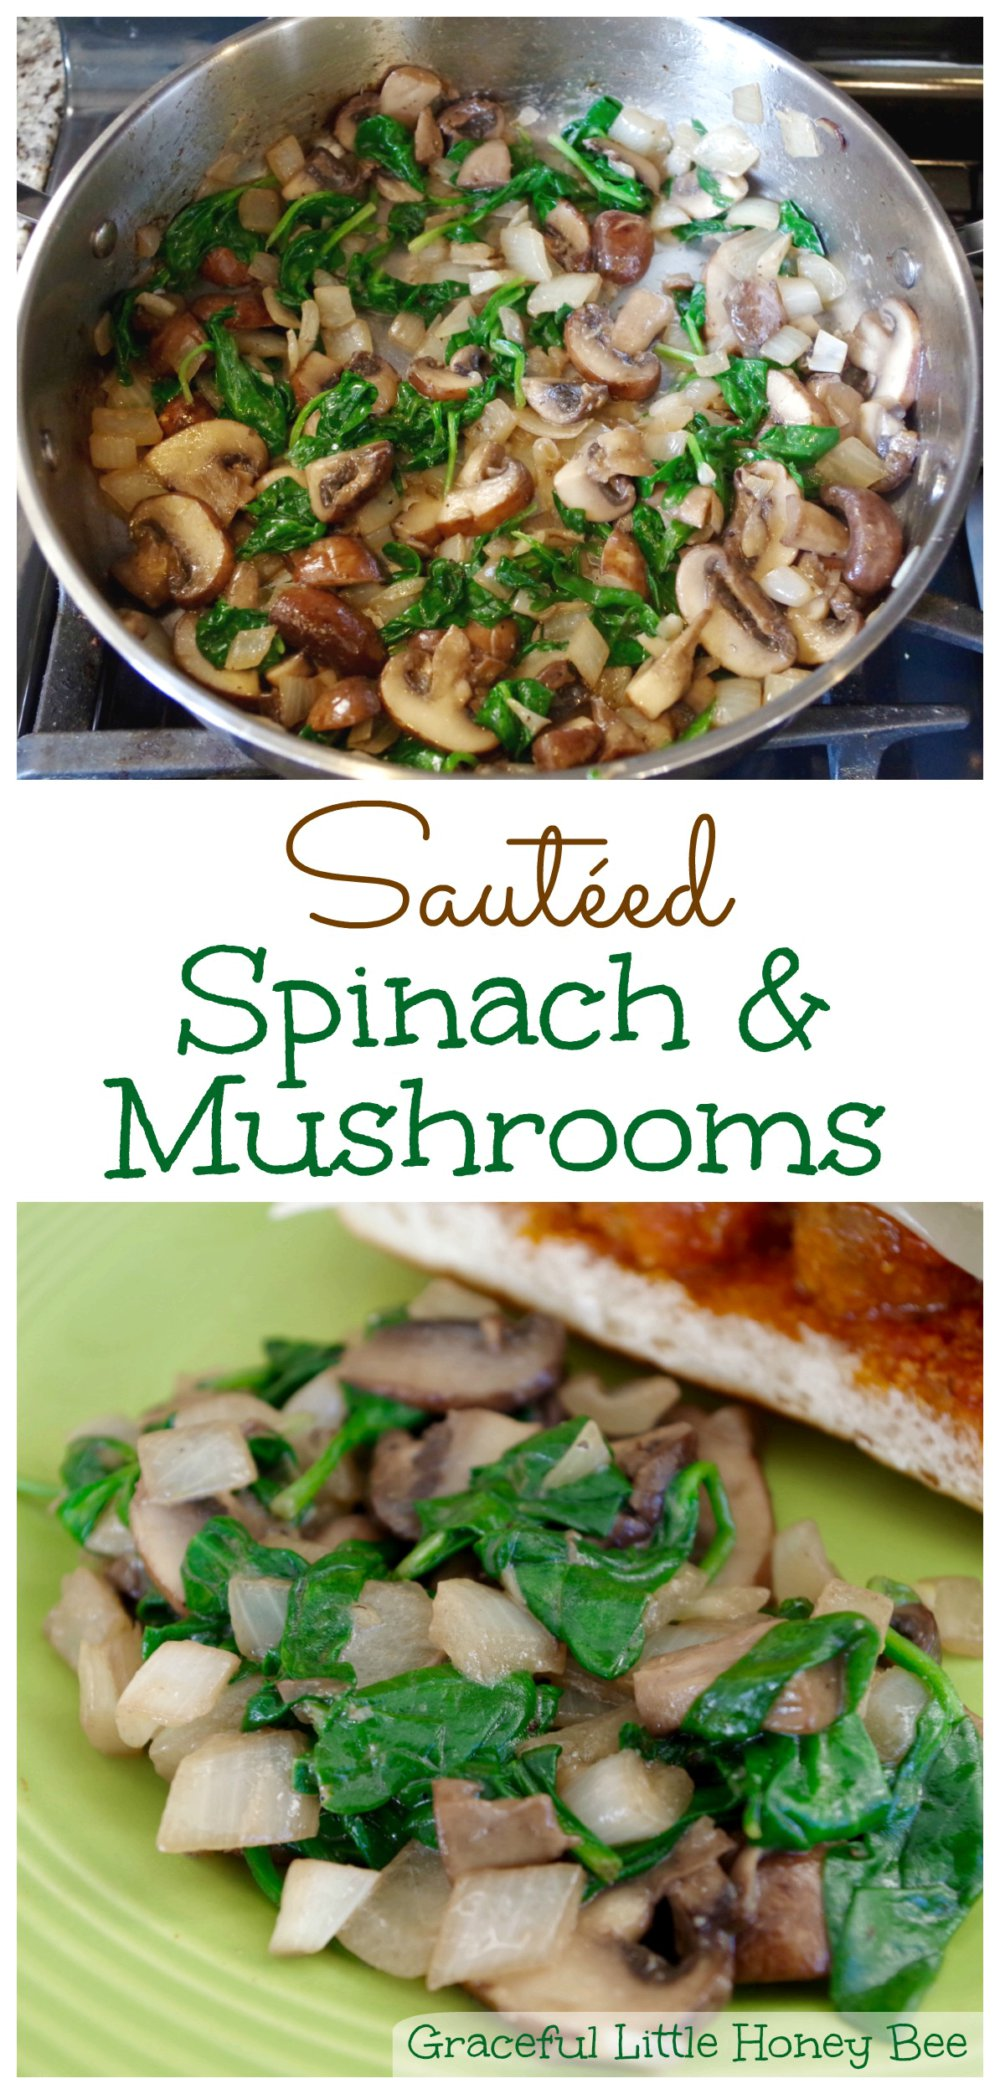 Sautéed Spinach and Mushrooms